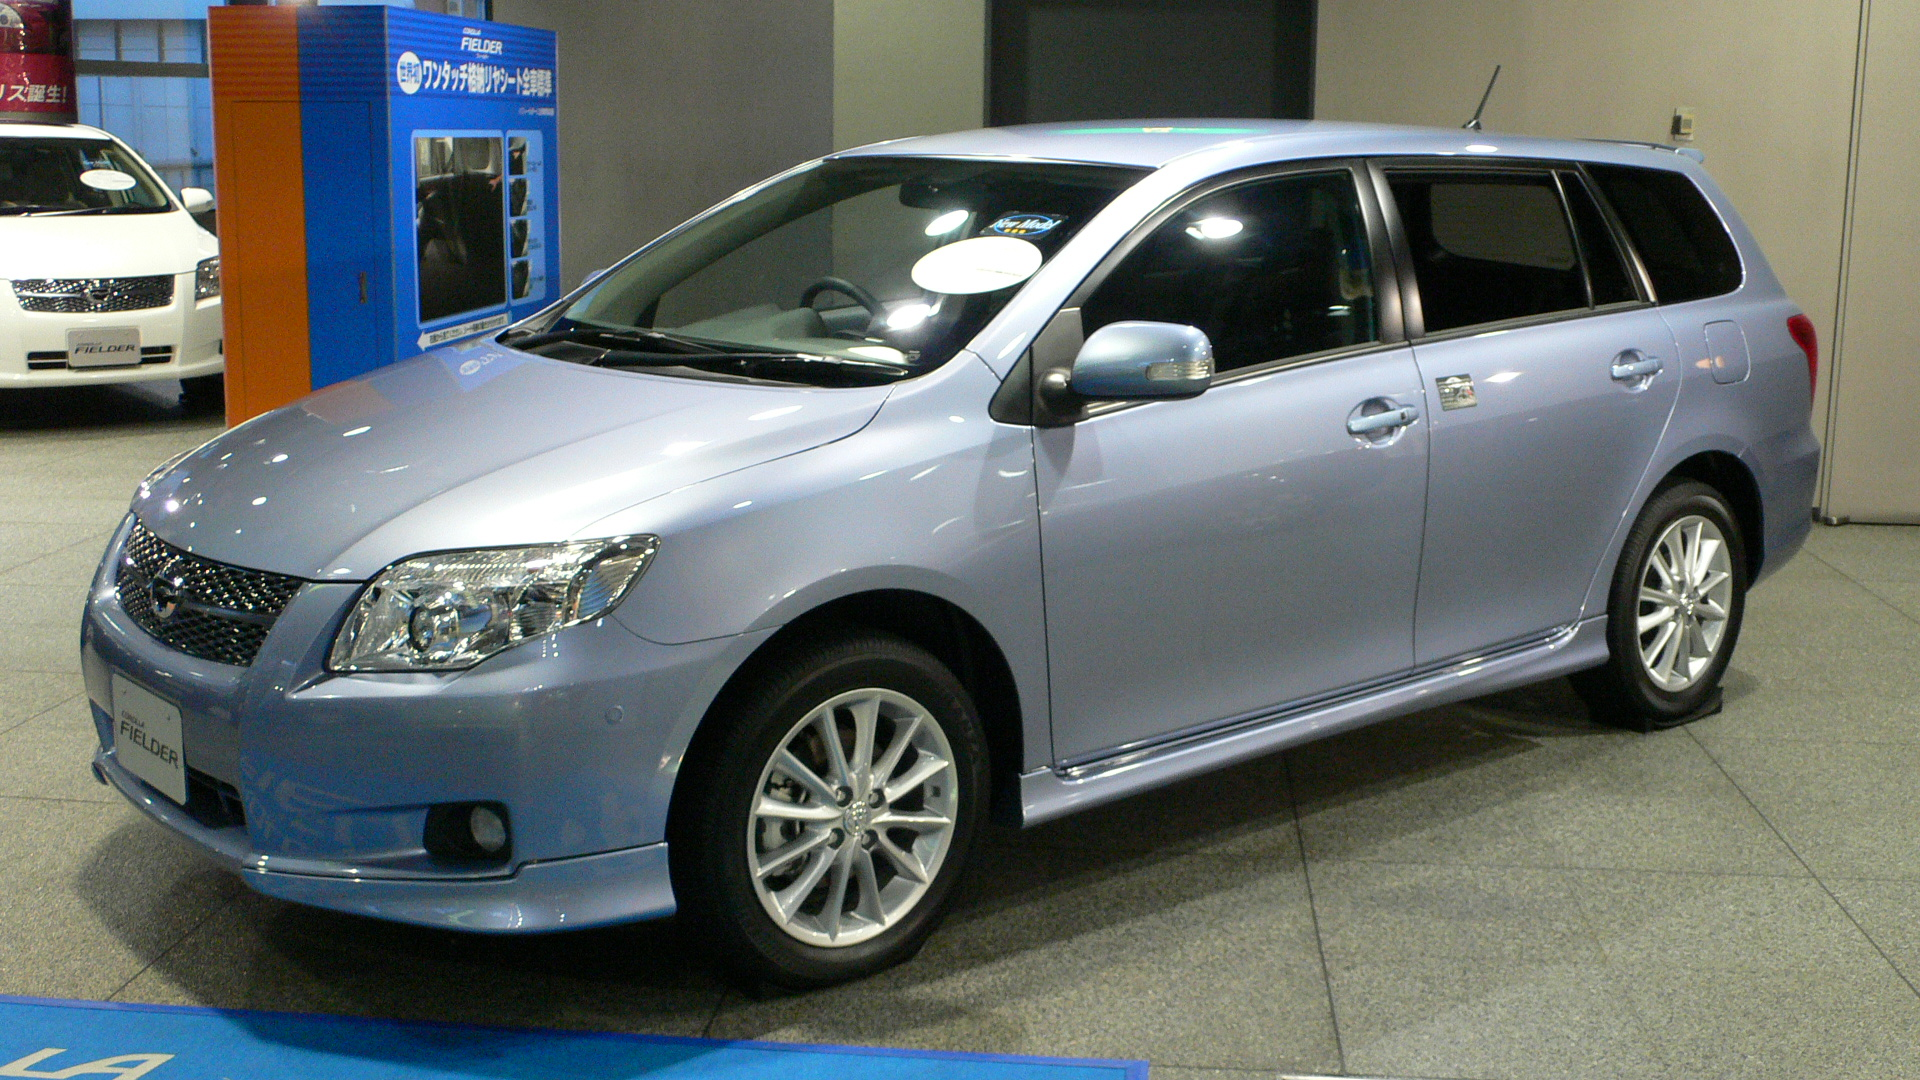 Toyota Probox 2006 photo - 4